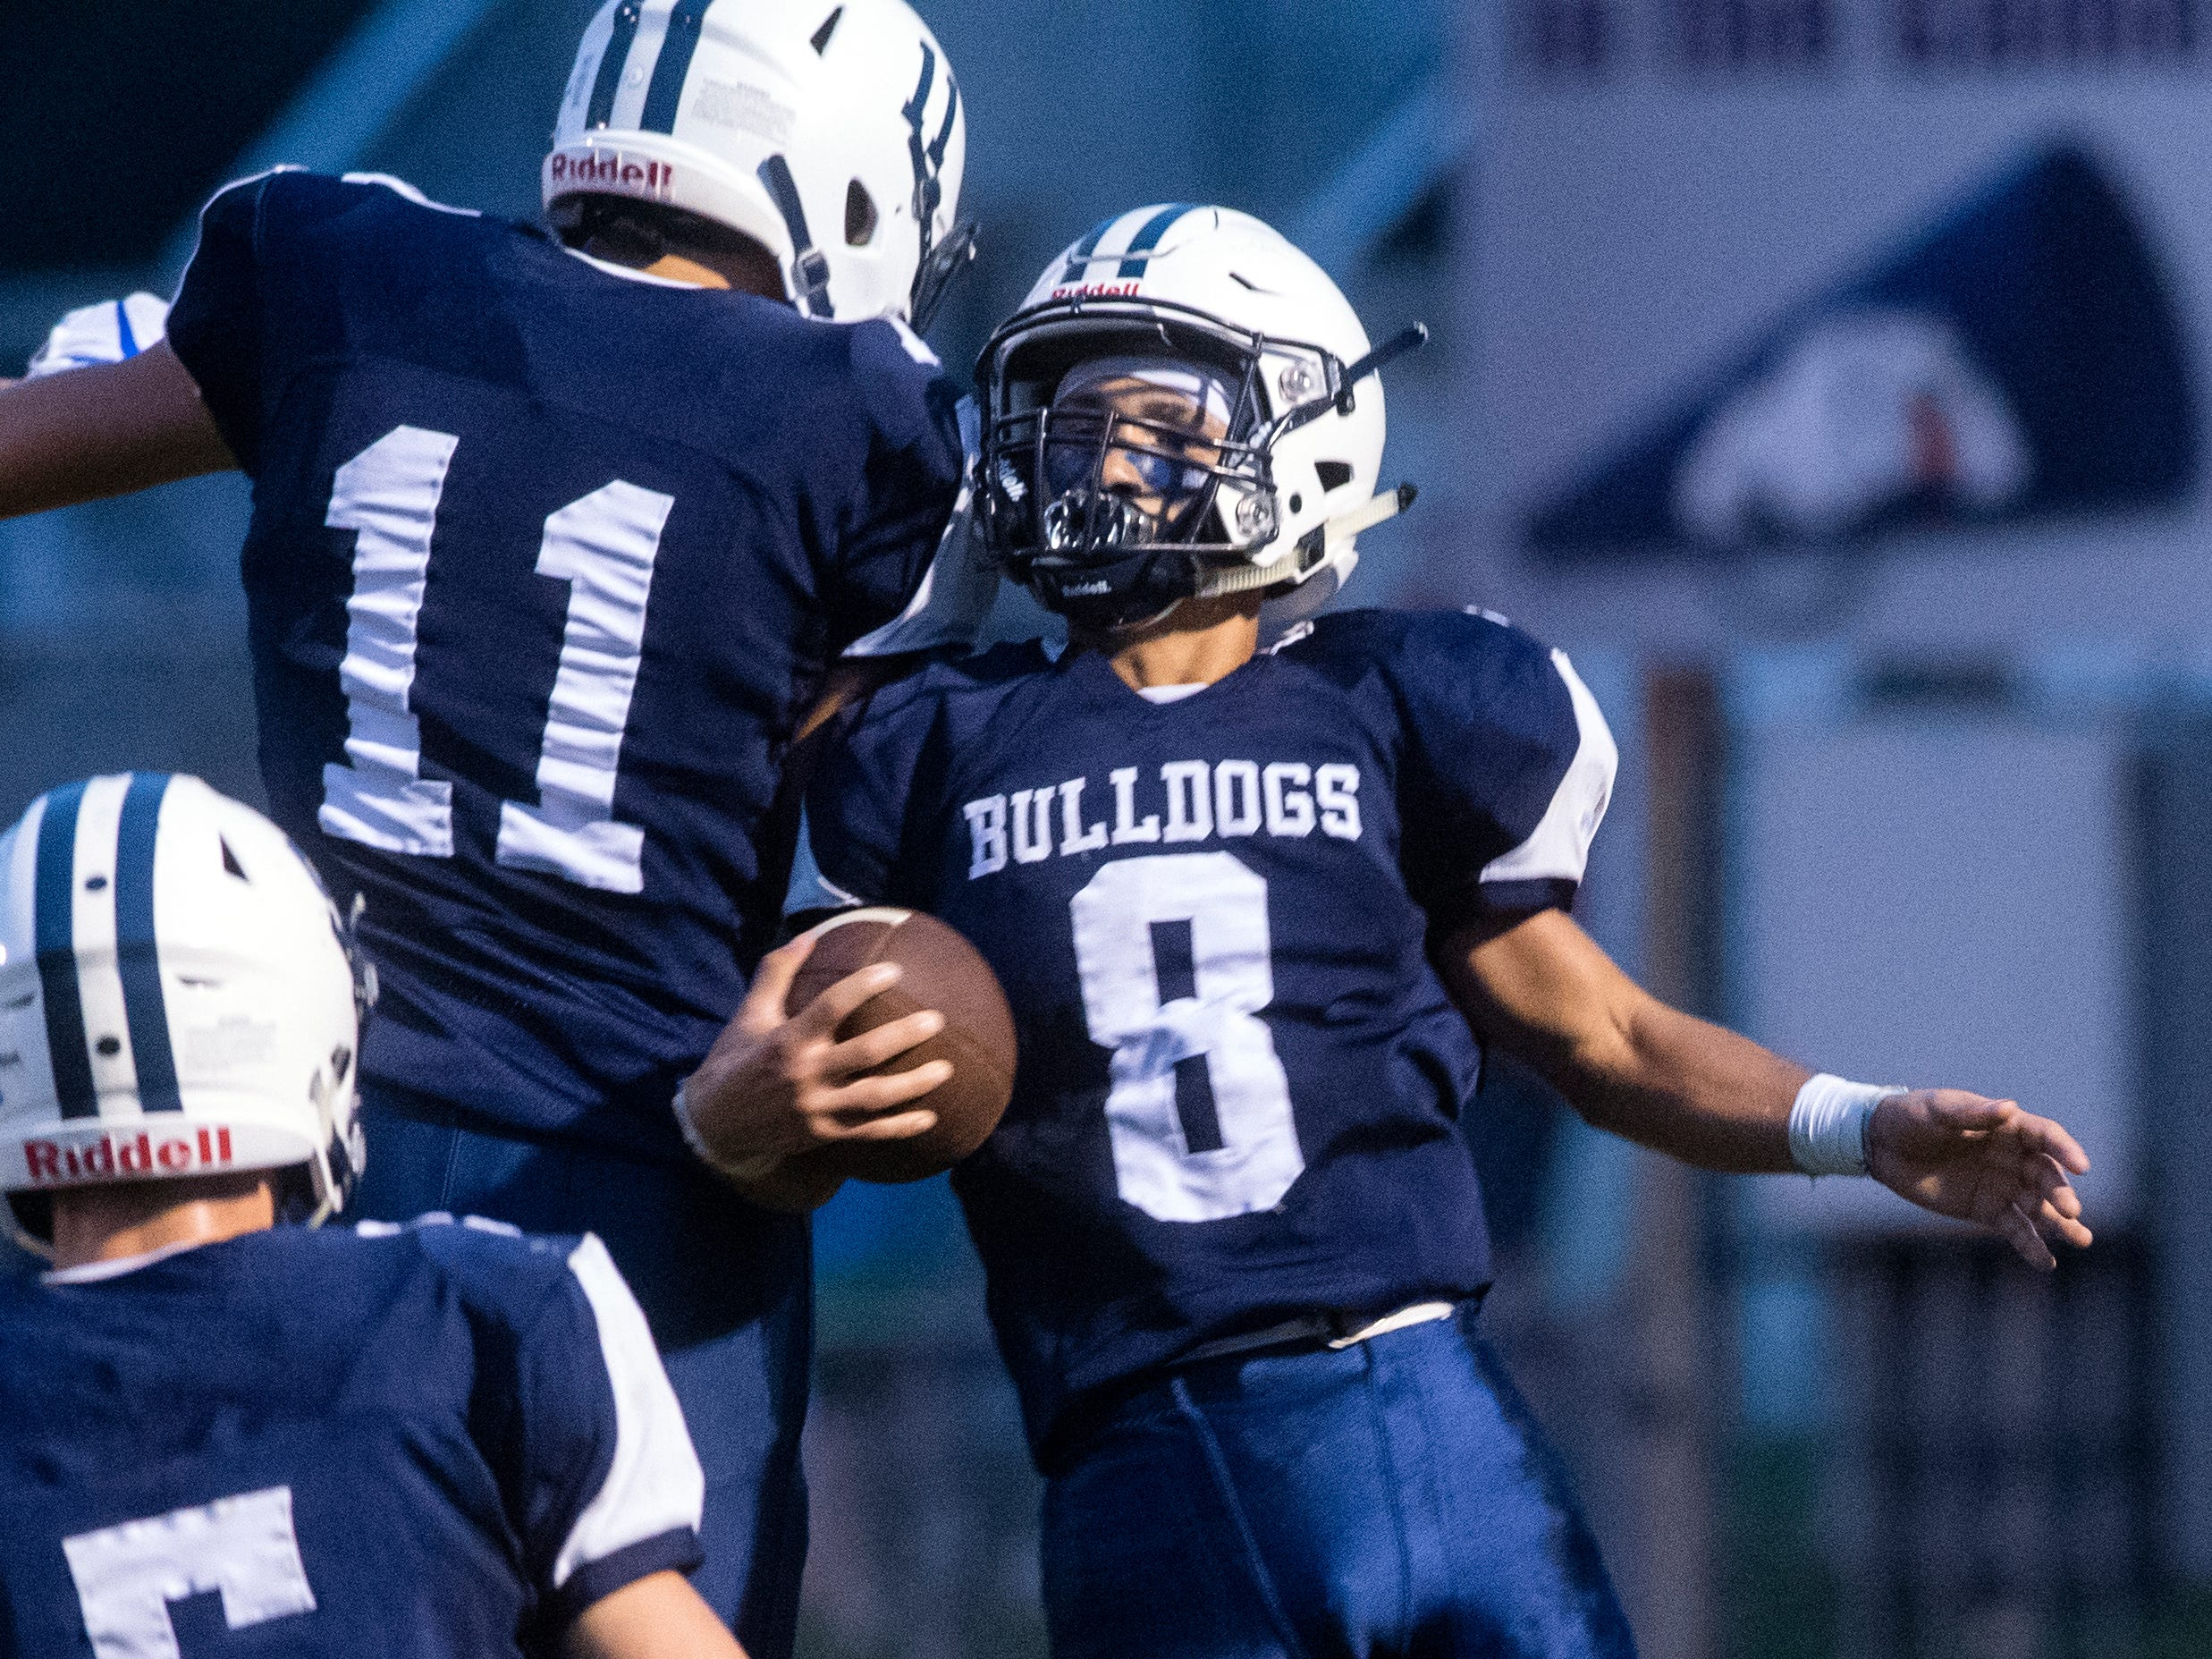 West York's Shane Kauffman (8) celebrates a touchdown with teammate Jose Pena (11), Friday, Aug. 31, 2018. The Shippensburg Greyhounds beat the West York Bulldgos, 21-14.